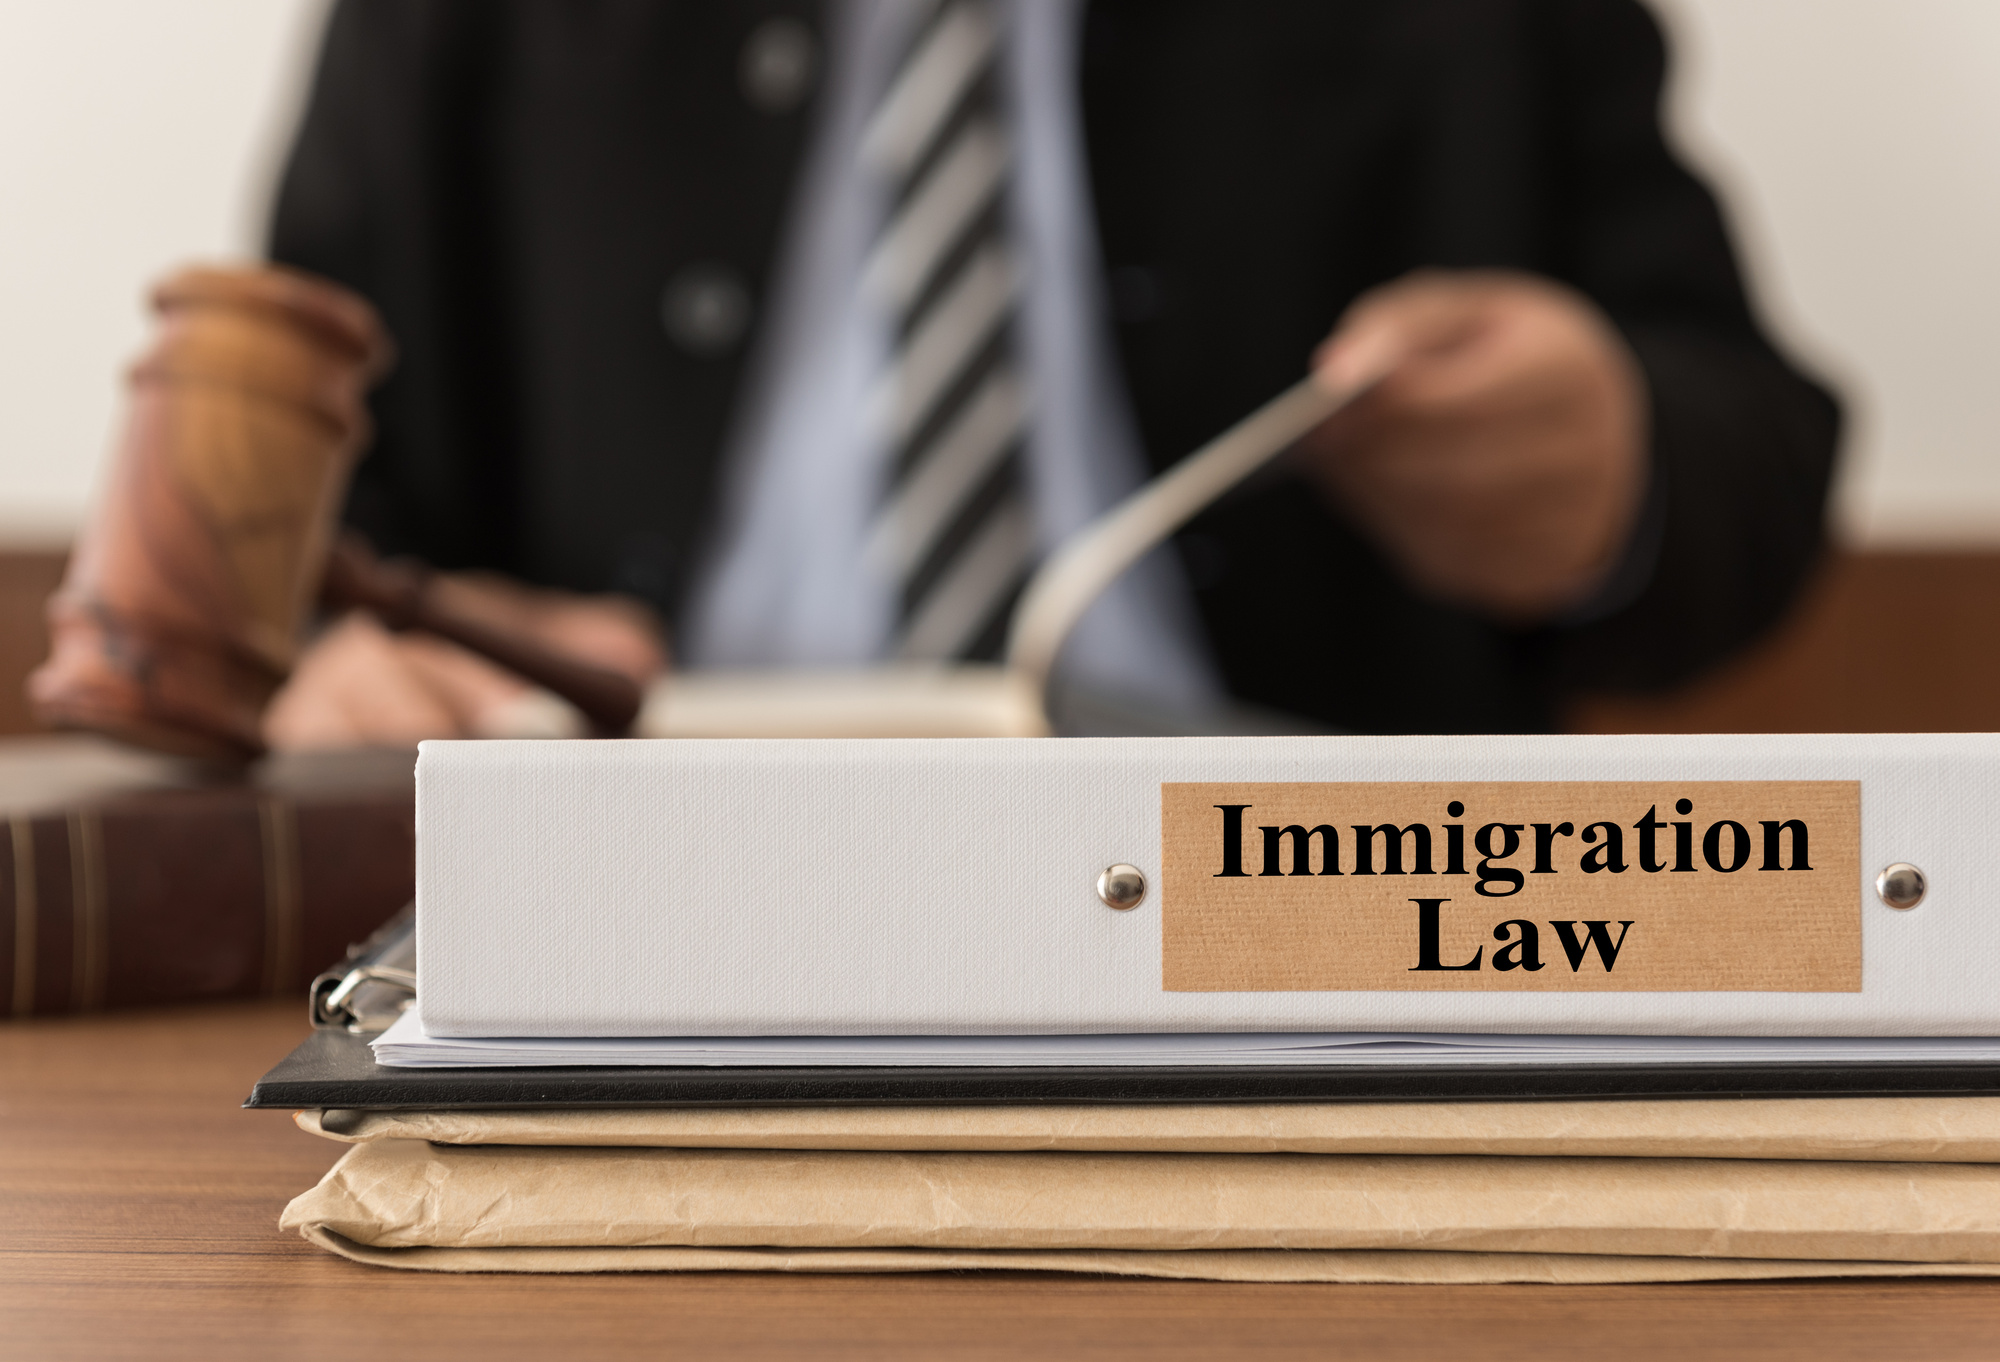 REASONS TO HIRE AN IMMIGRATION LAWYER